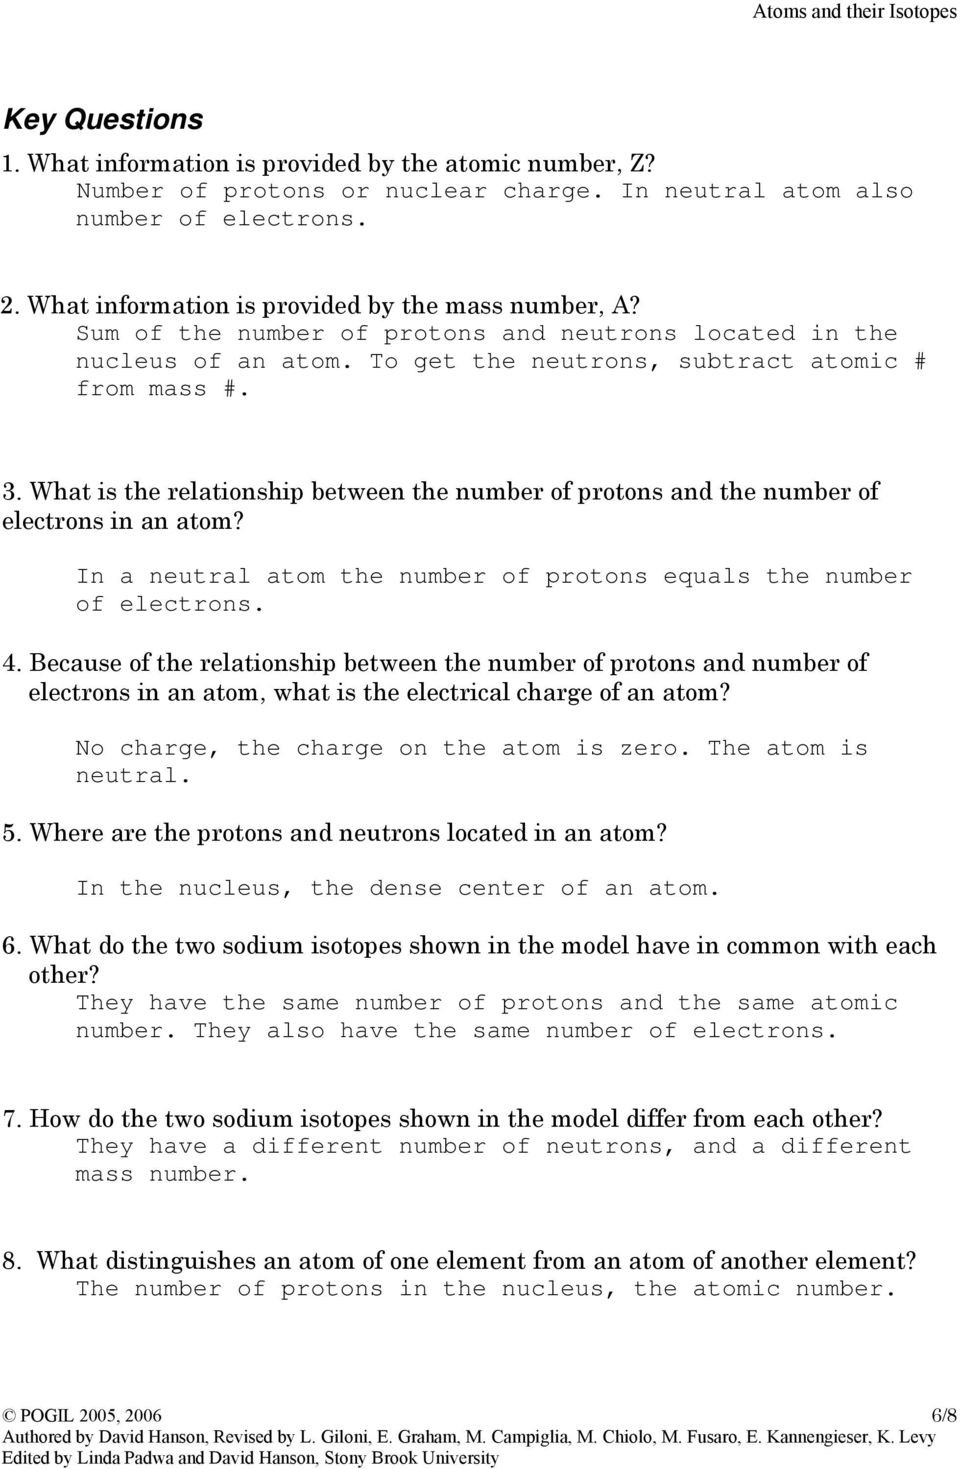 Isotope Practice Worksheet Answer Key Instructors Guide atoms and their isotopes Pdf Free Download